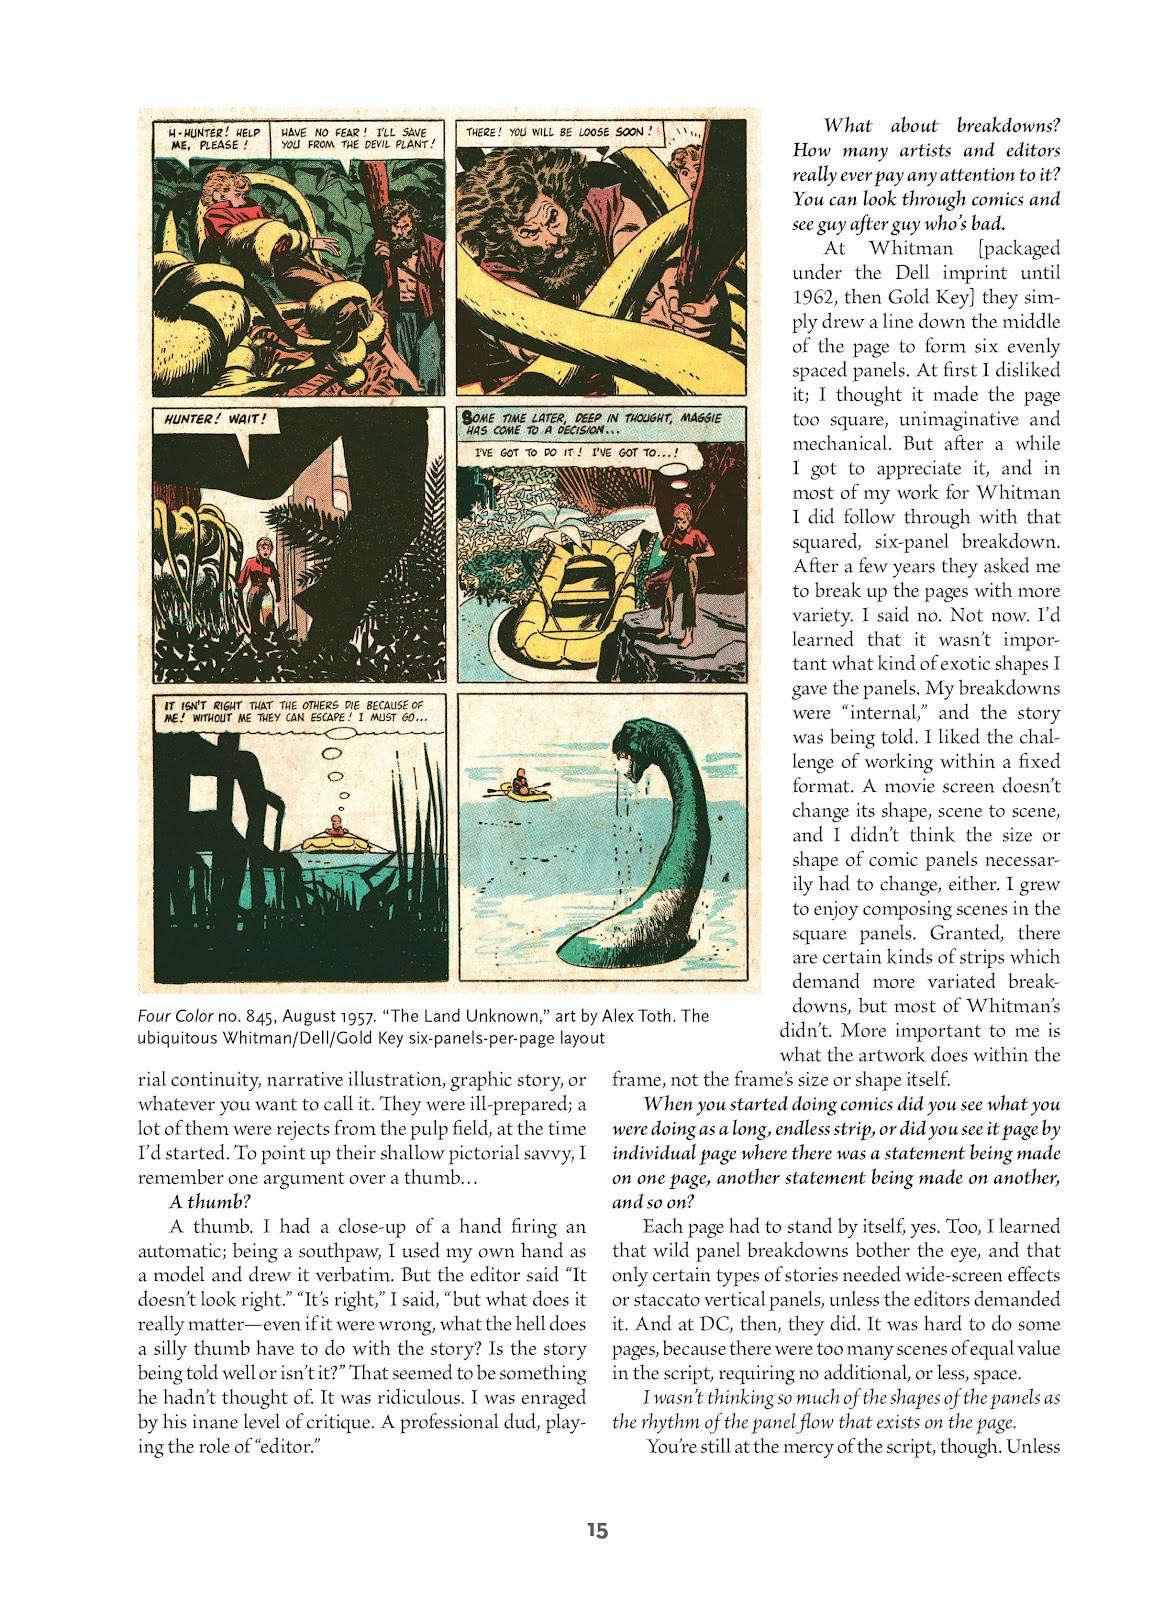 Read online Setting the Standard: Comics by Alex Toth 1952-1954 comic -  Issue # TPB (Part 1) - 14